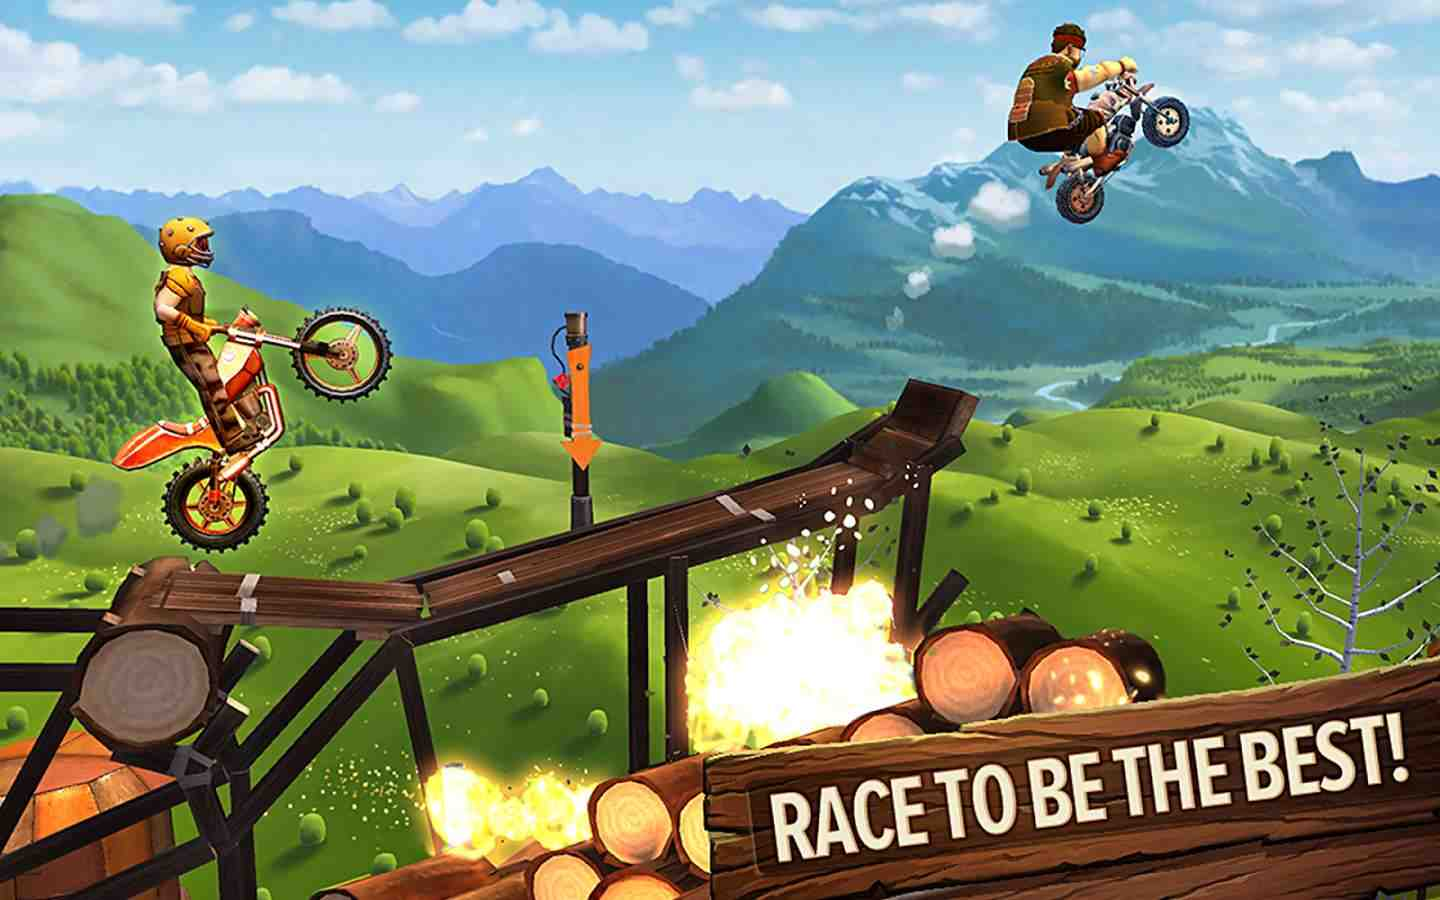 Image currently unavailable. Go to www.generator.trulyhack.com and choose Trials Frontier image, you will be redirect to Trials Frontier Generator site.